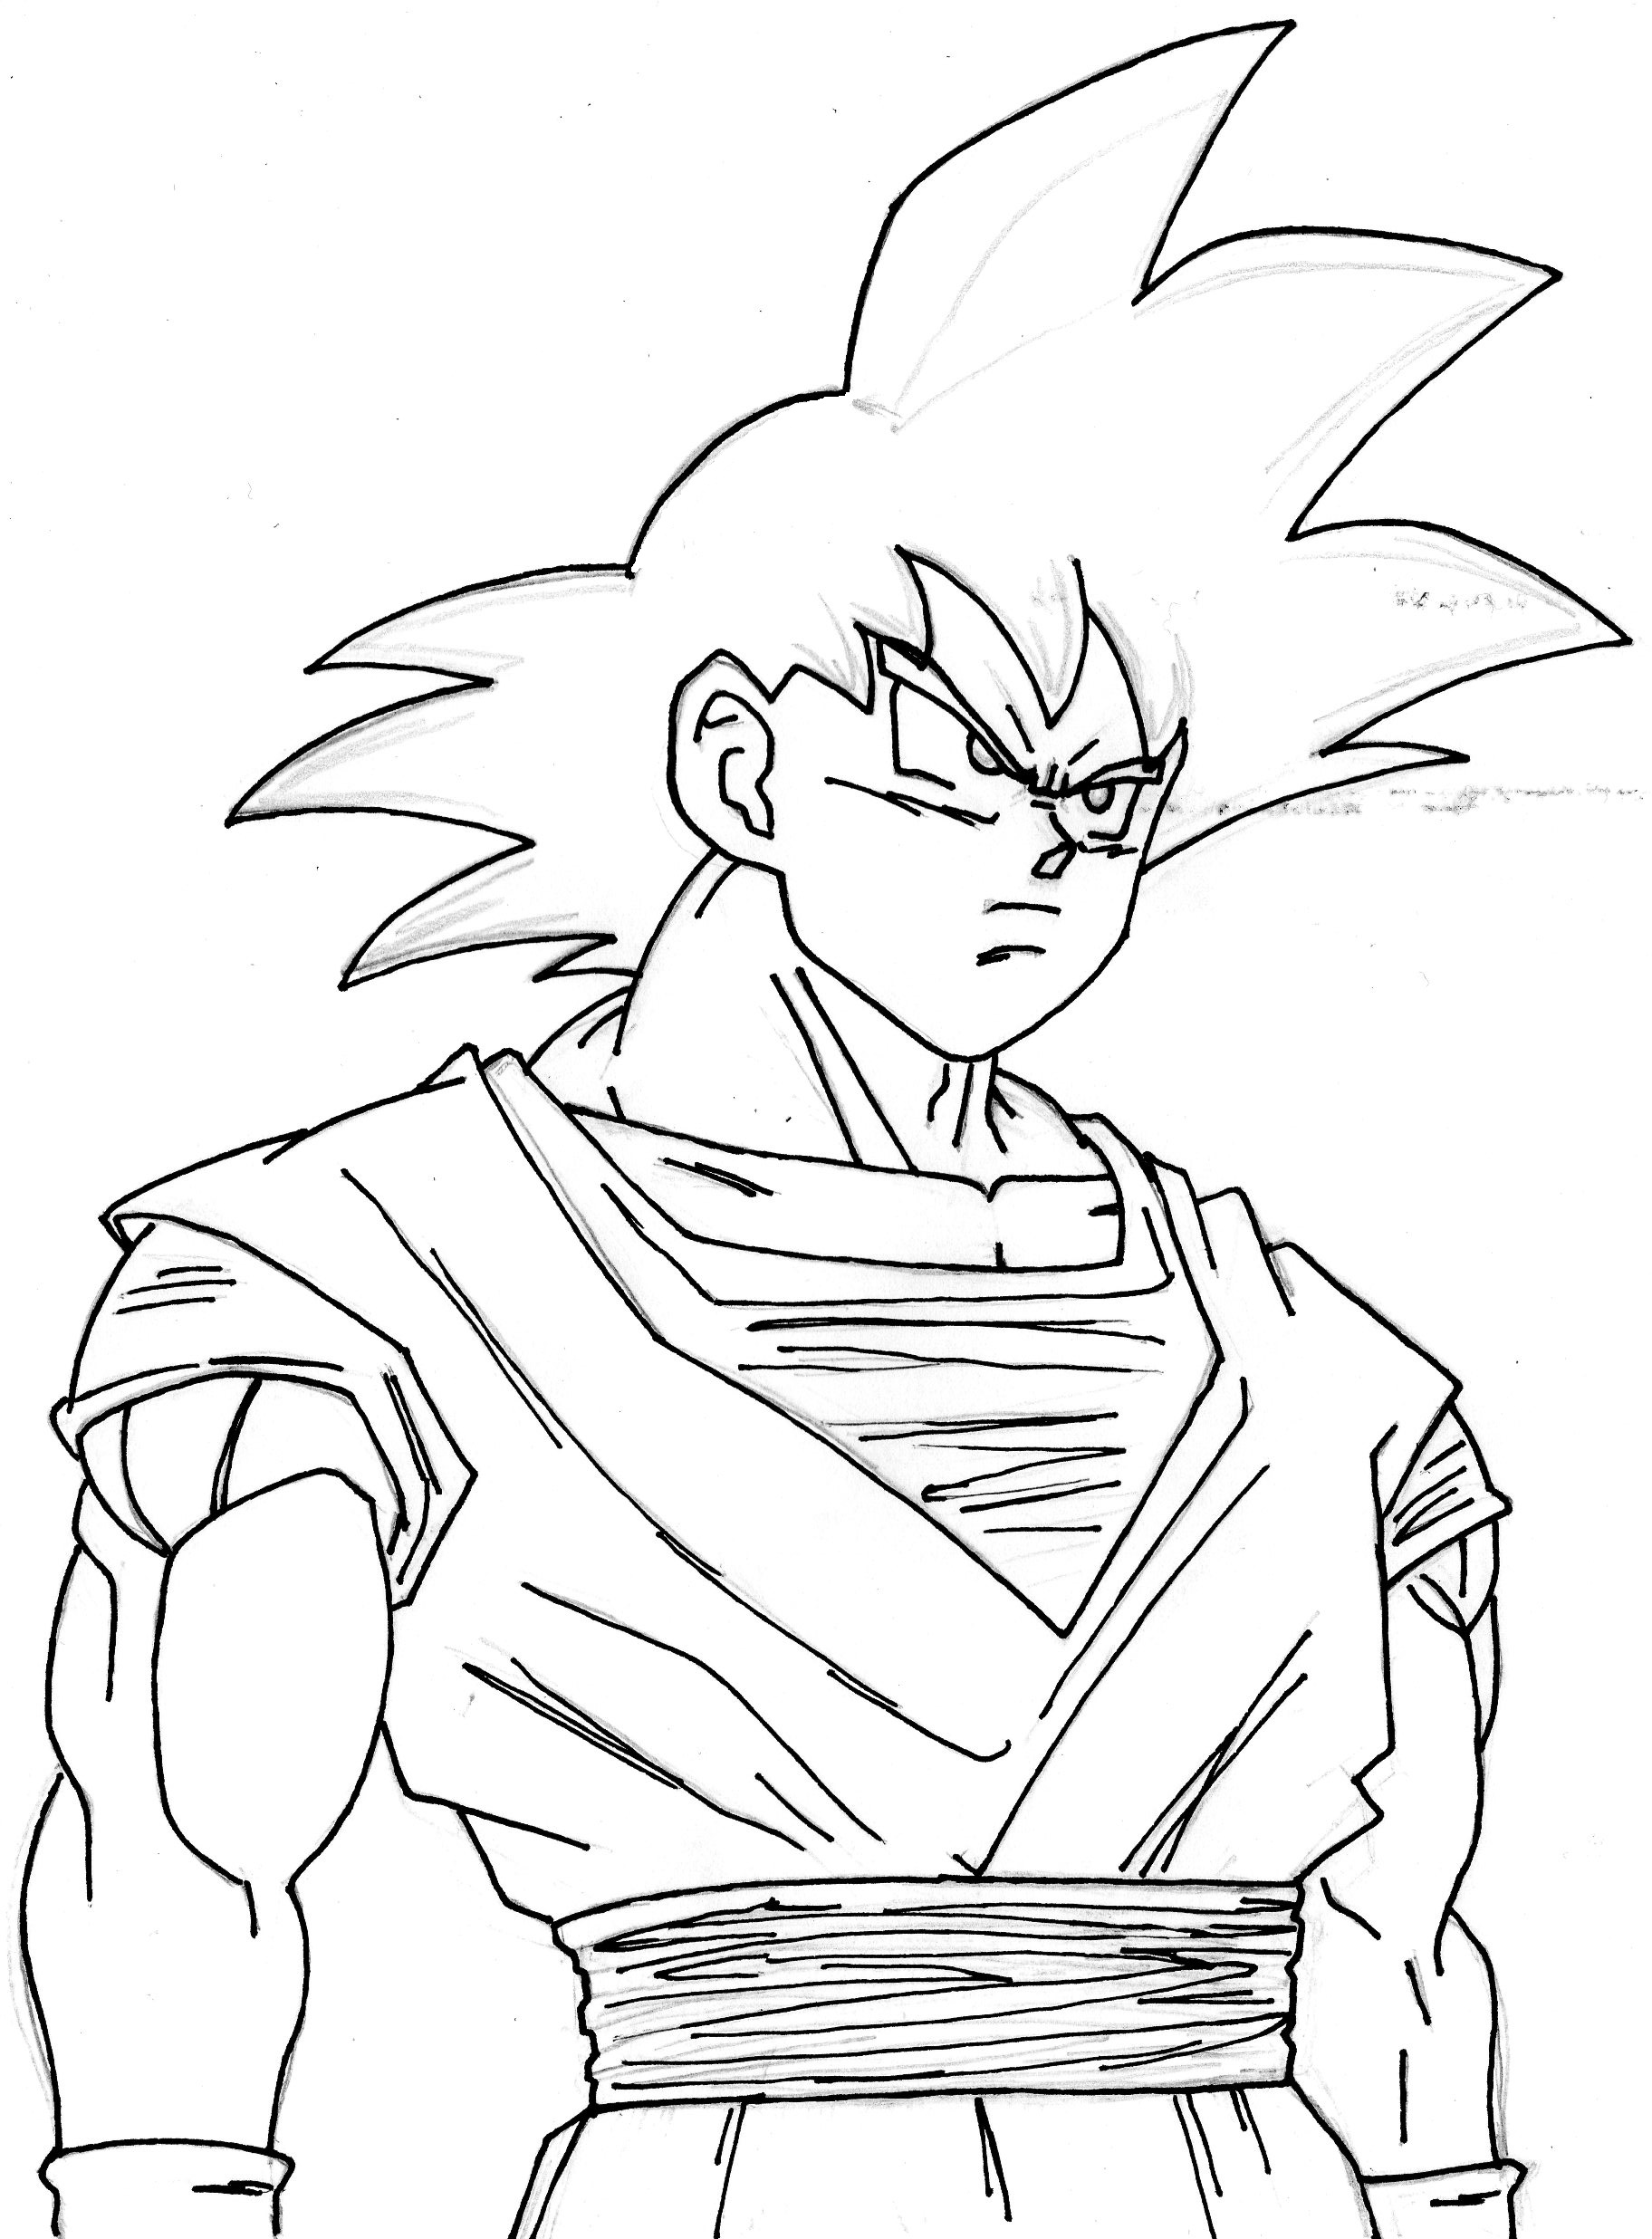 Goku Without Color By Aminoz6 On Deviantart